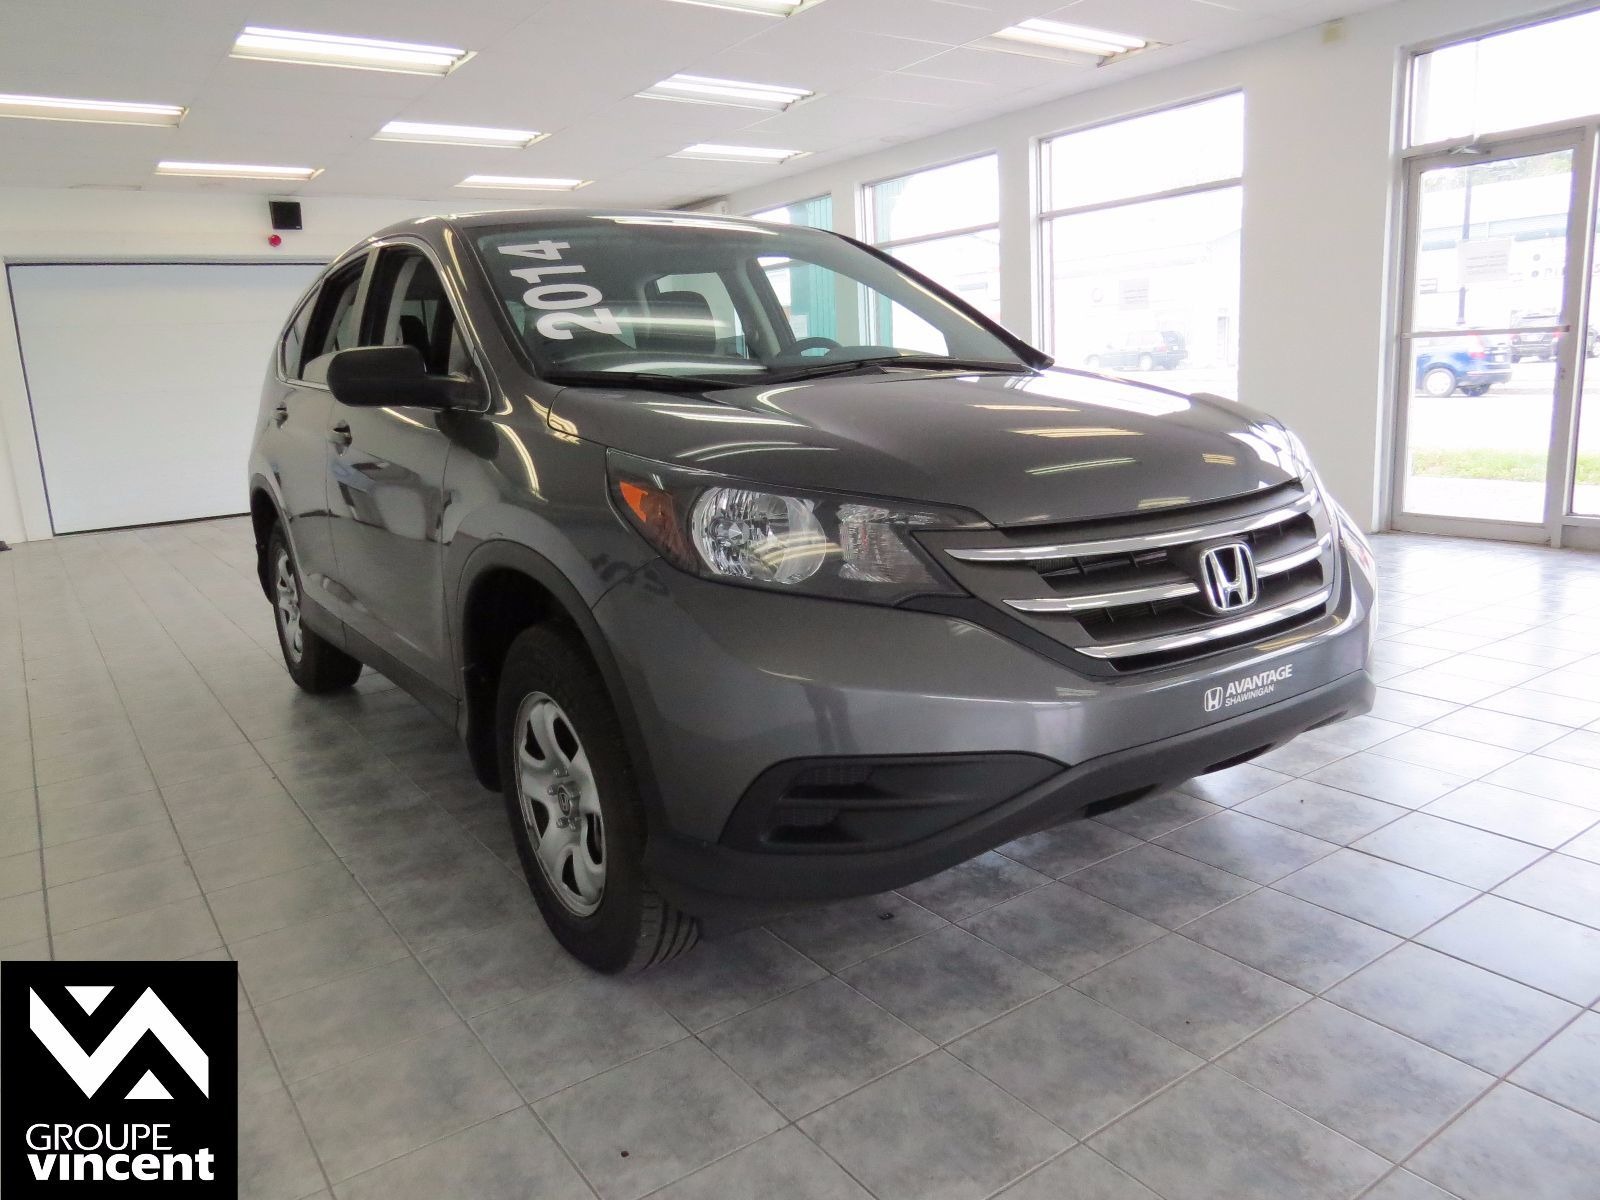 honda cr v lx awd 2014 d 39 occasion shawinigan groupe vincent 7238av. Black Bedroom Furniture Sets. Home Design Ideas